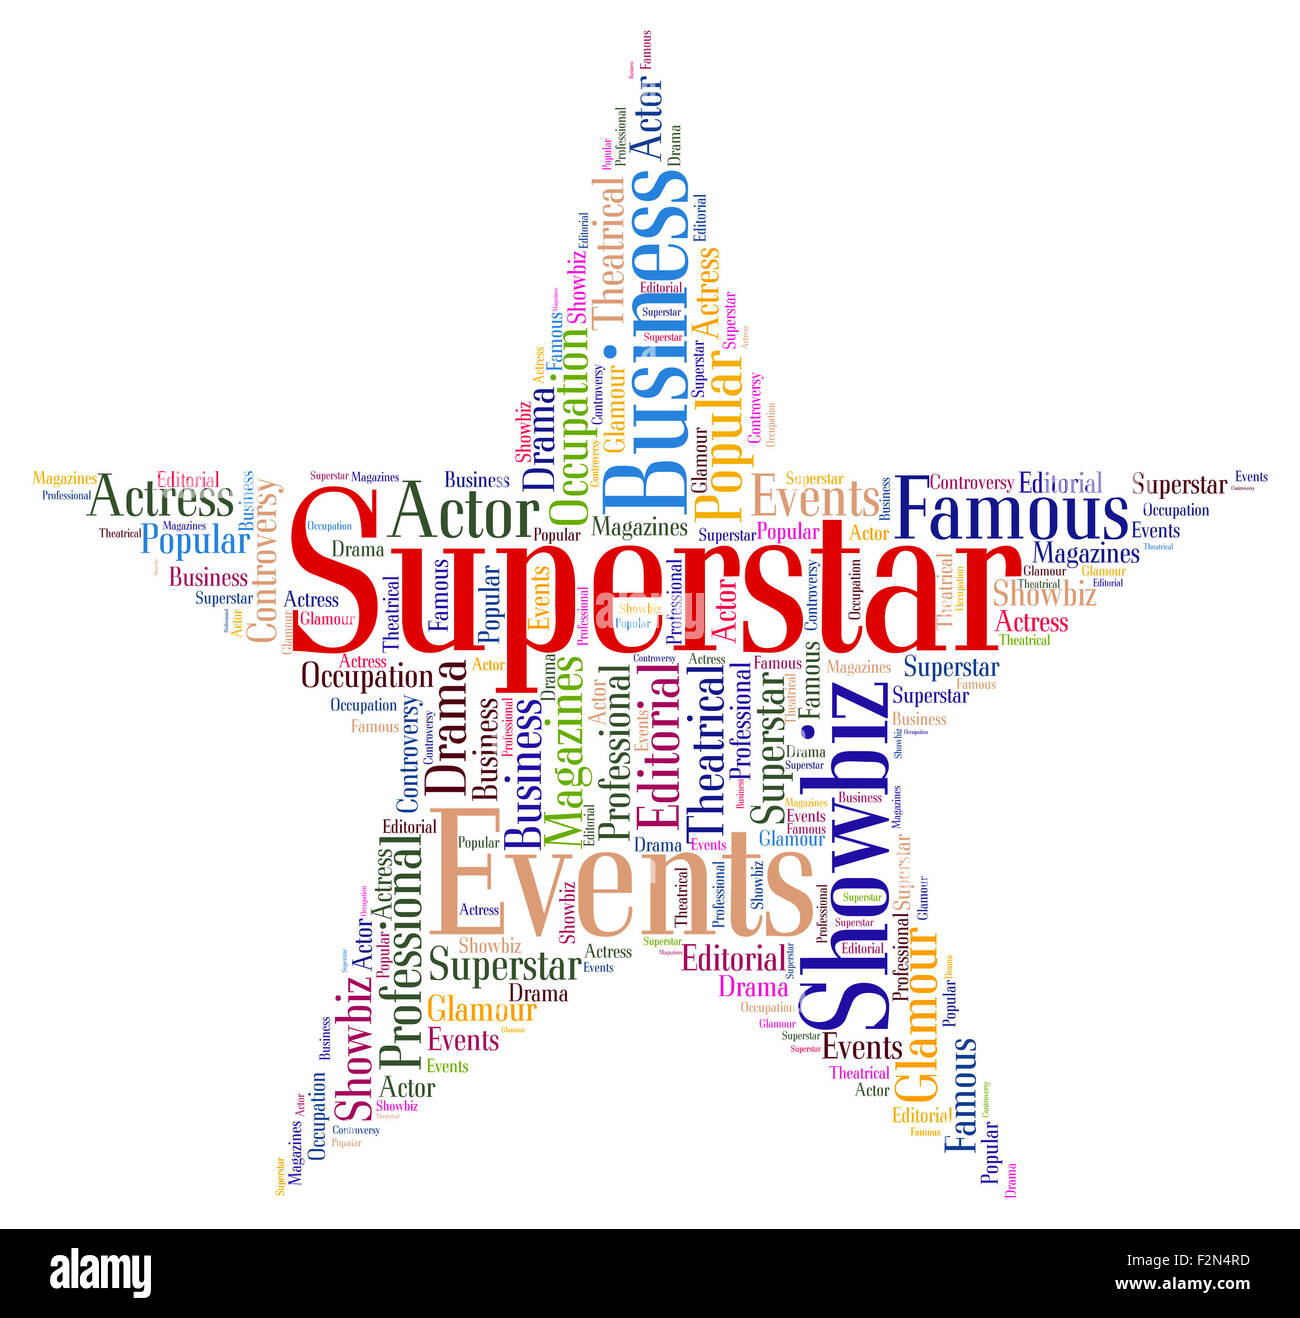 superstar word representing personality luminaries and words stock